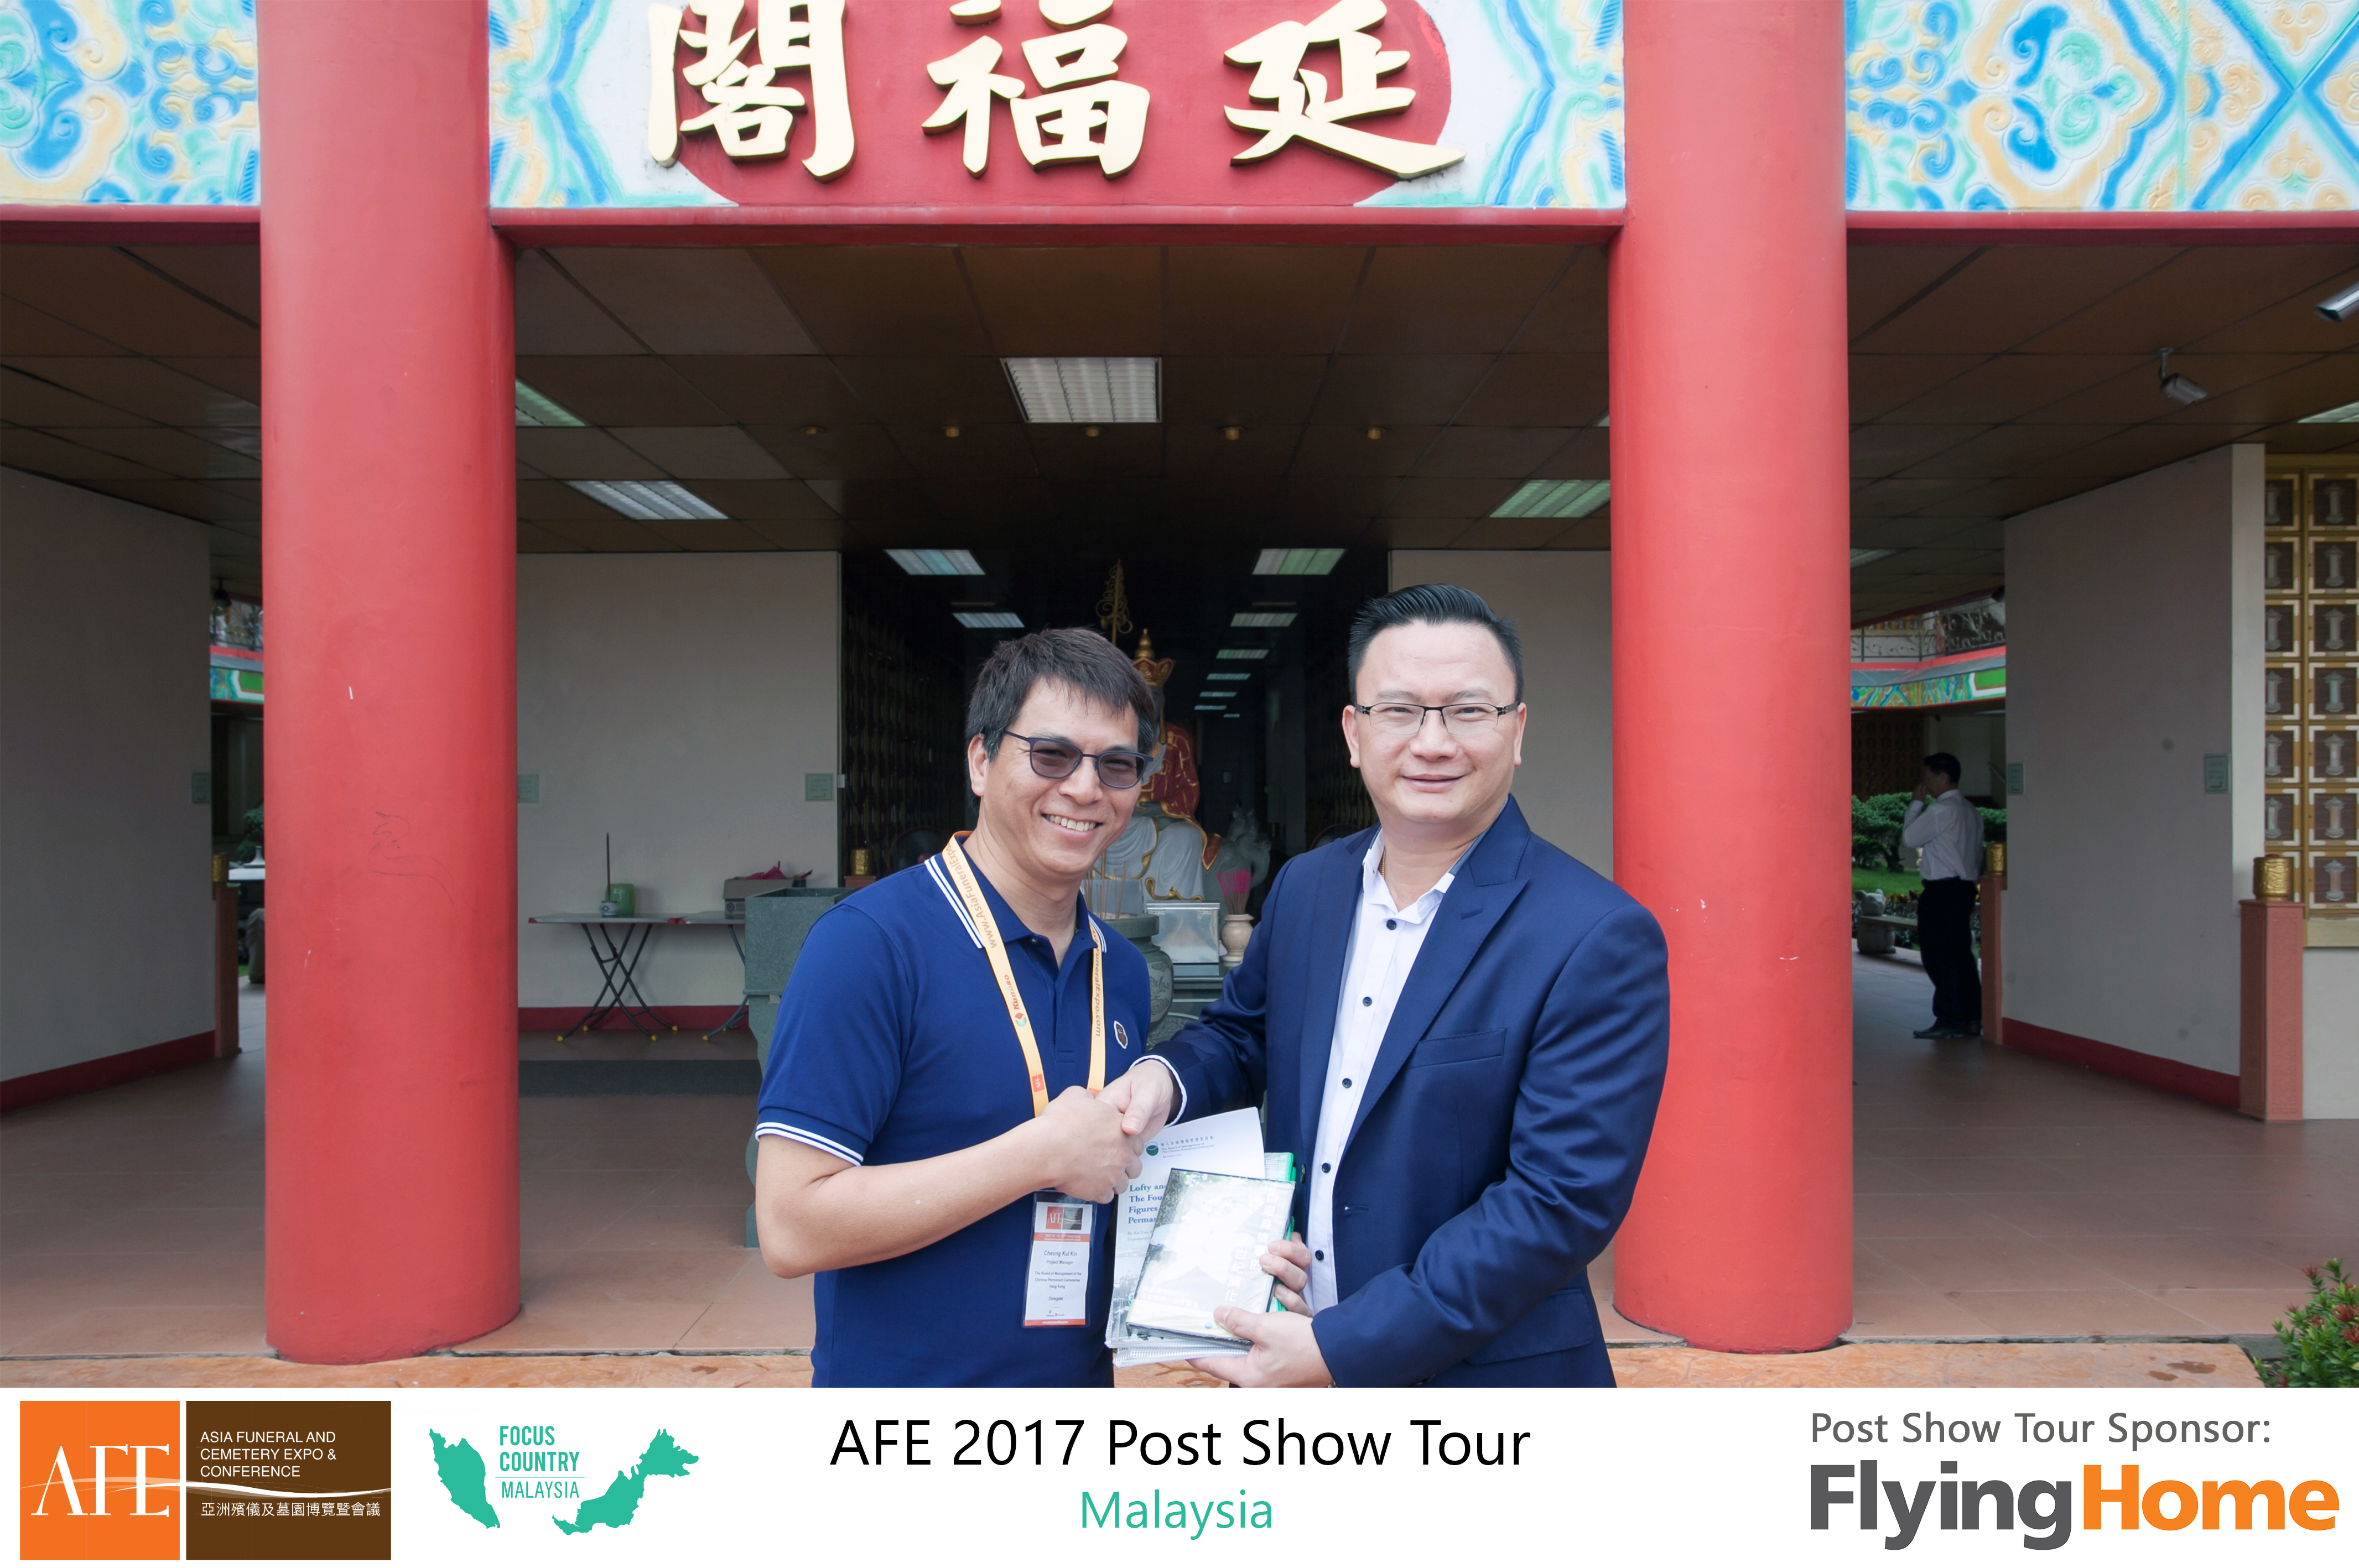 AFE Post Show Tour 2017 Day 4 - 17